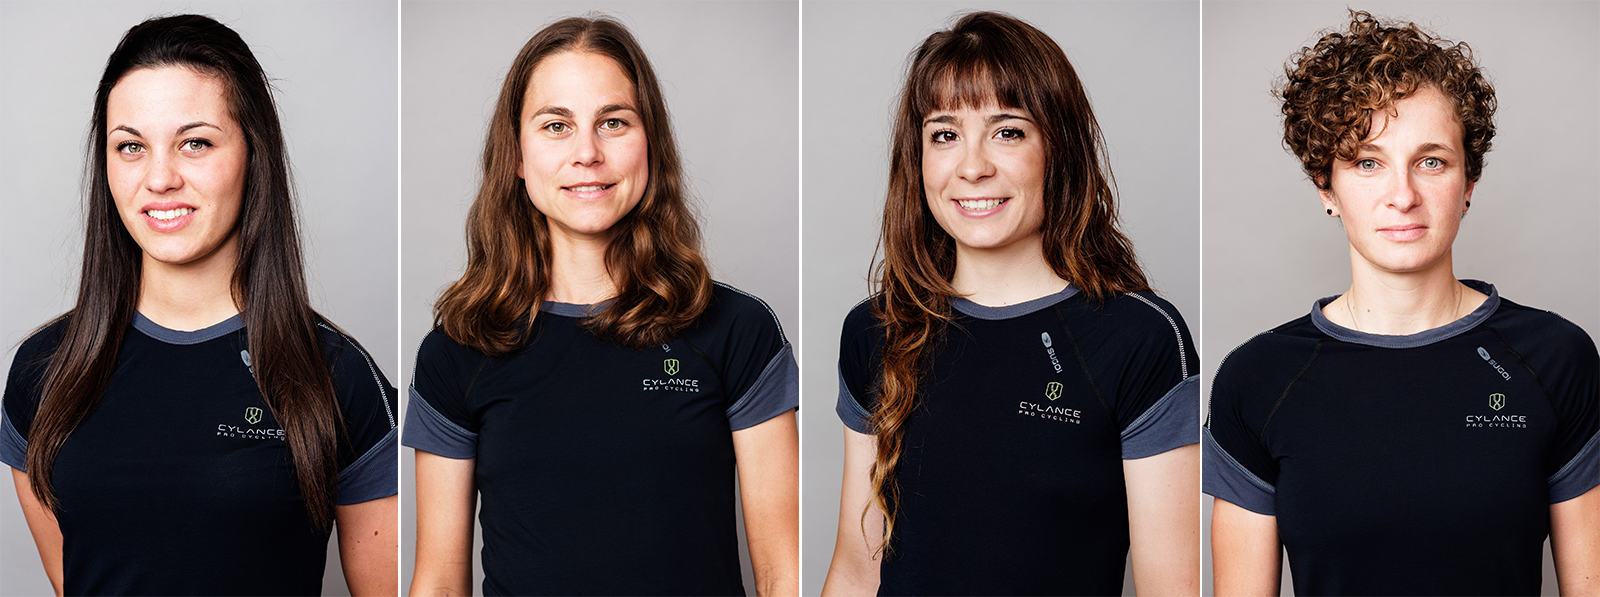 Cylance Pro Women's Cycling Team Roster